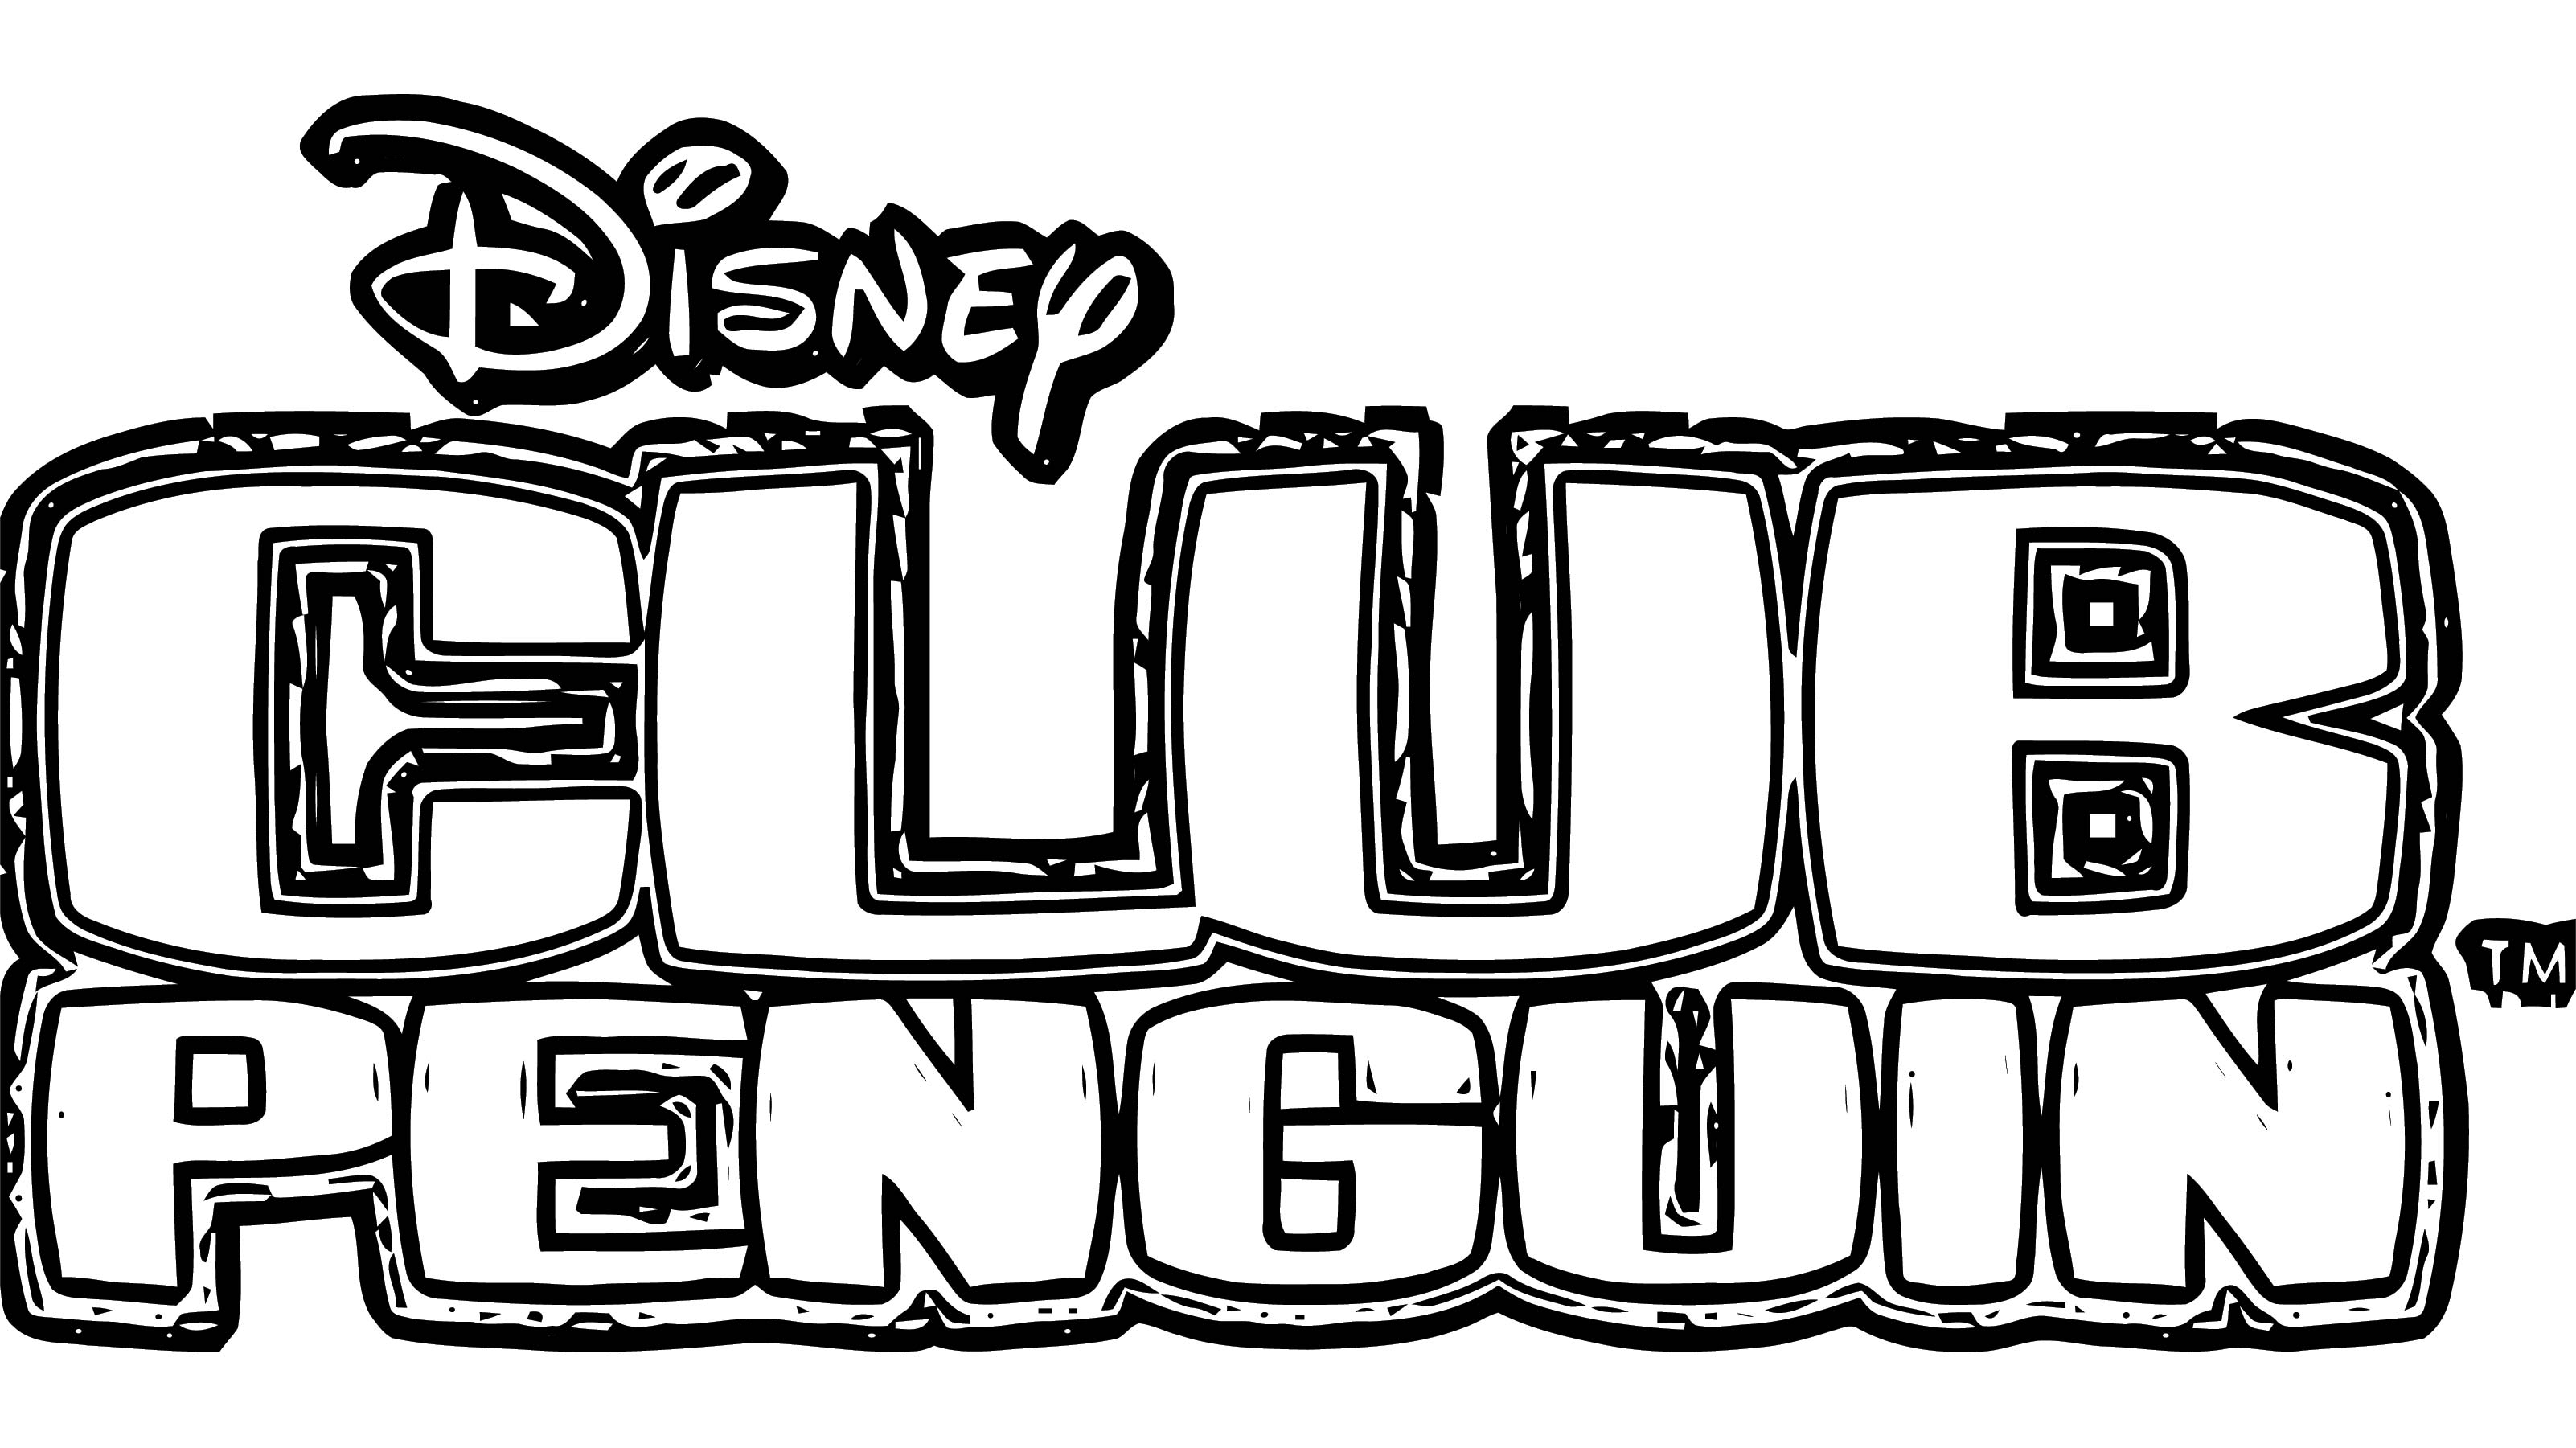 Club Penguin Logo Coloring Page